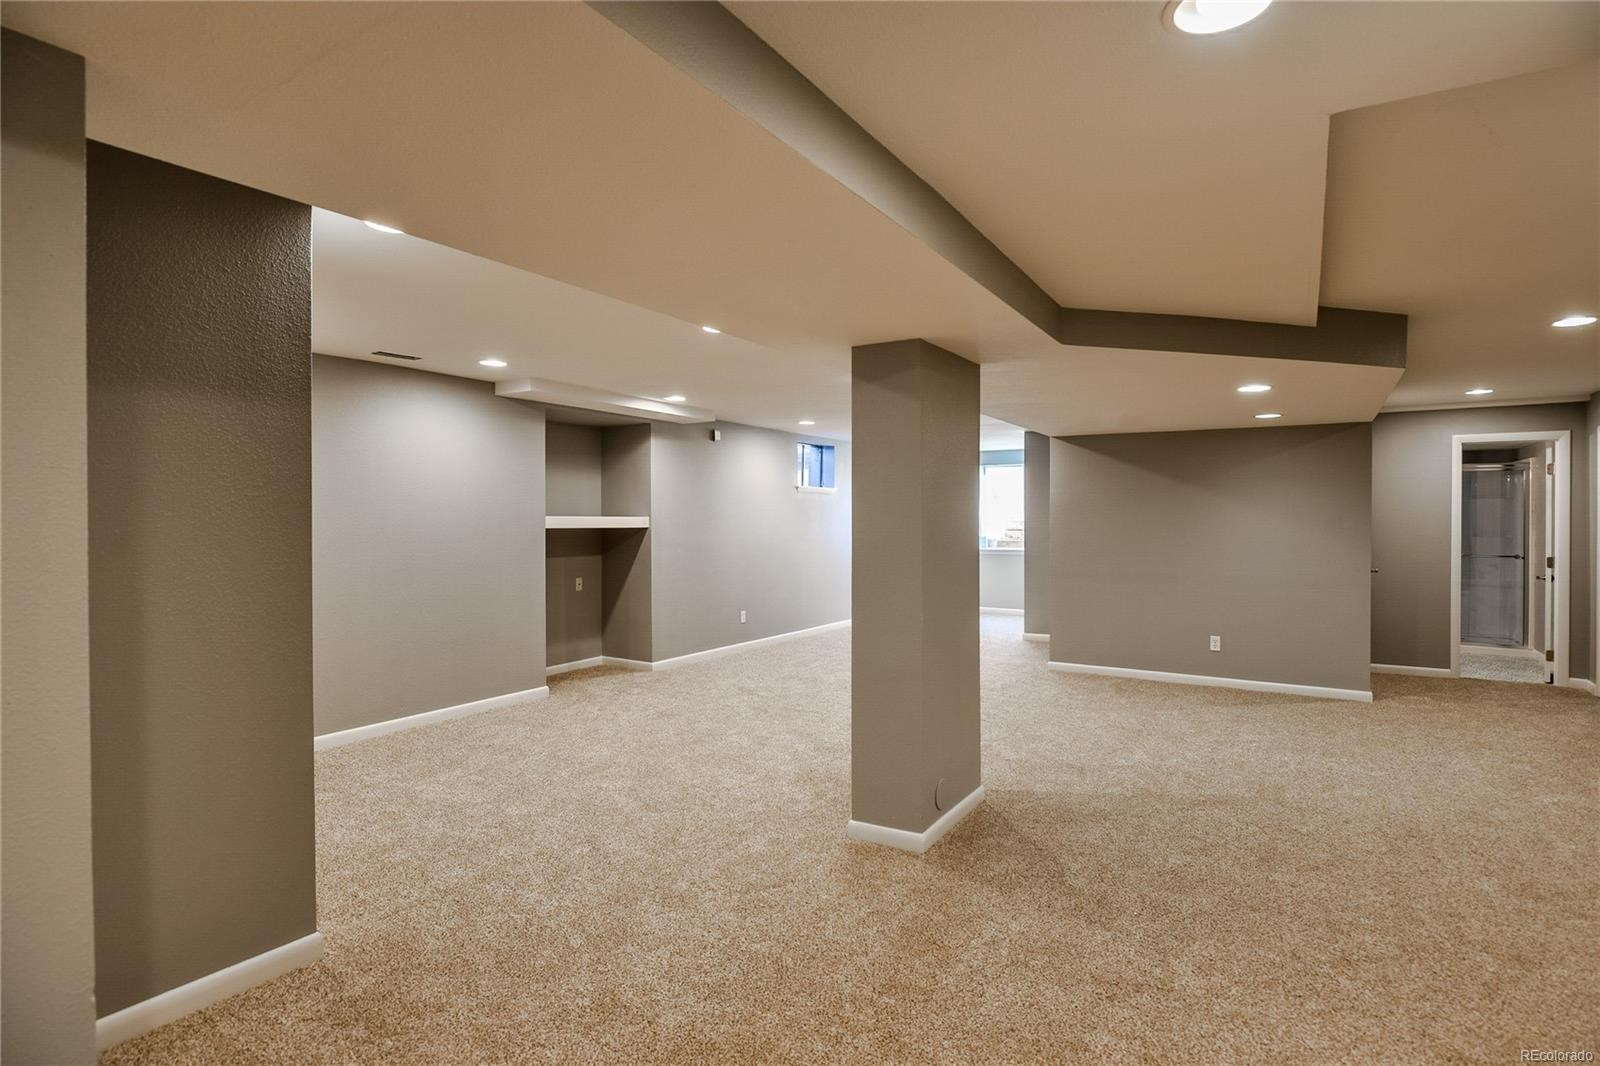 MLS# 8183776 - 18 - 2547 W 104th Circle, Westminster, CO 80234